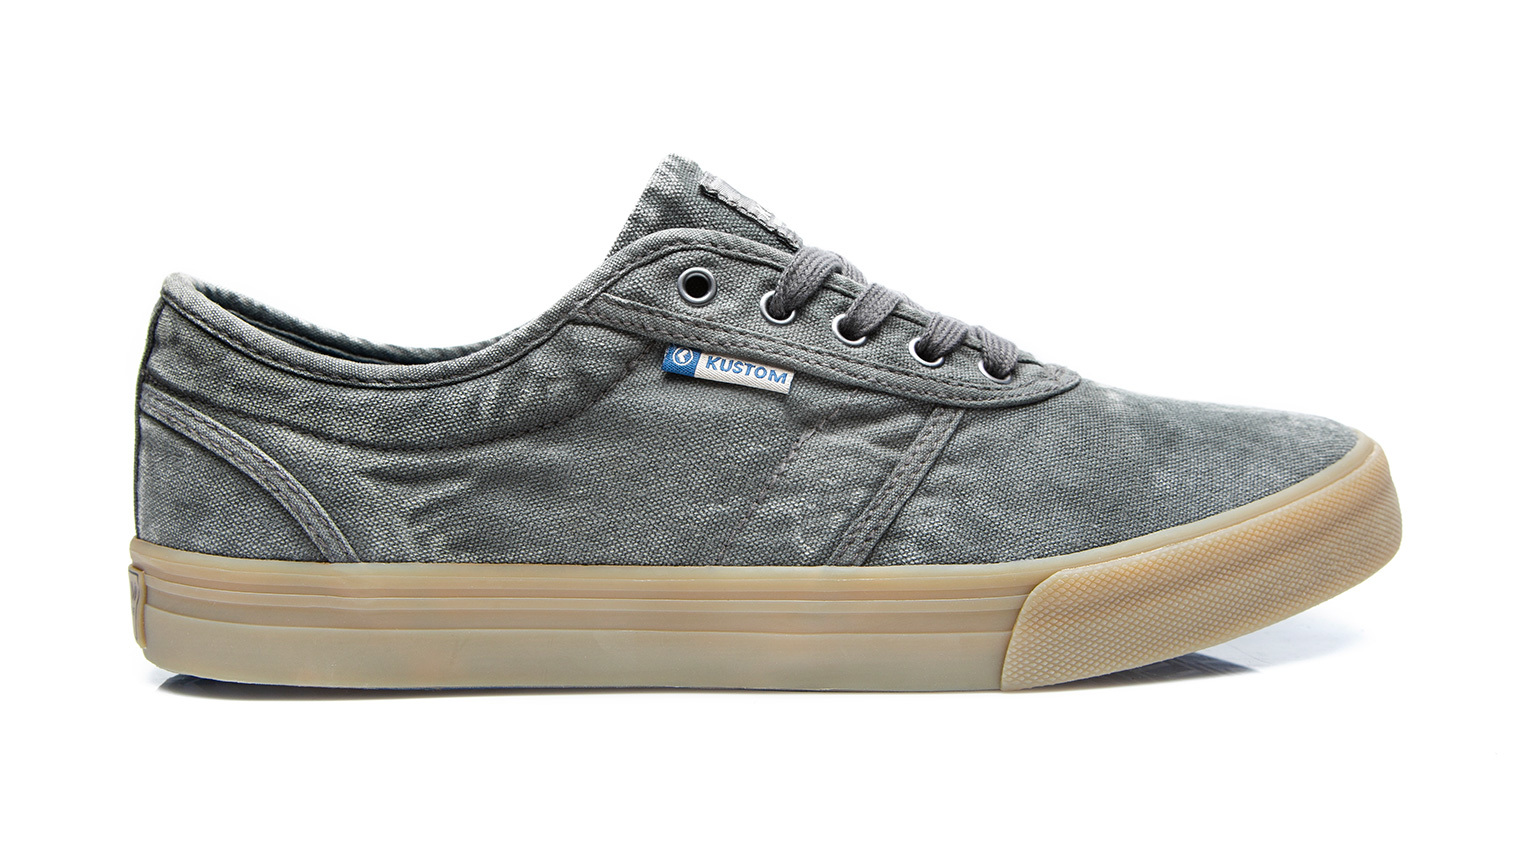 KUSTOM SHOES DROPKICK PRO SHOE / WASHED GREY